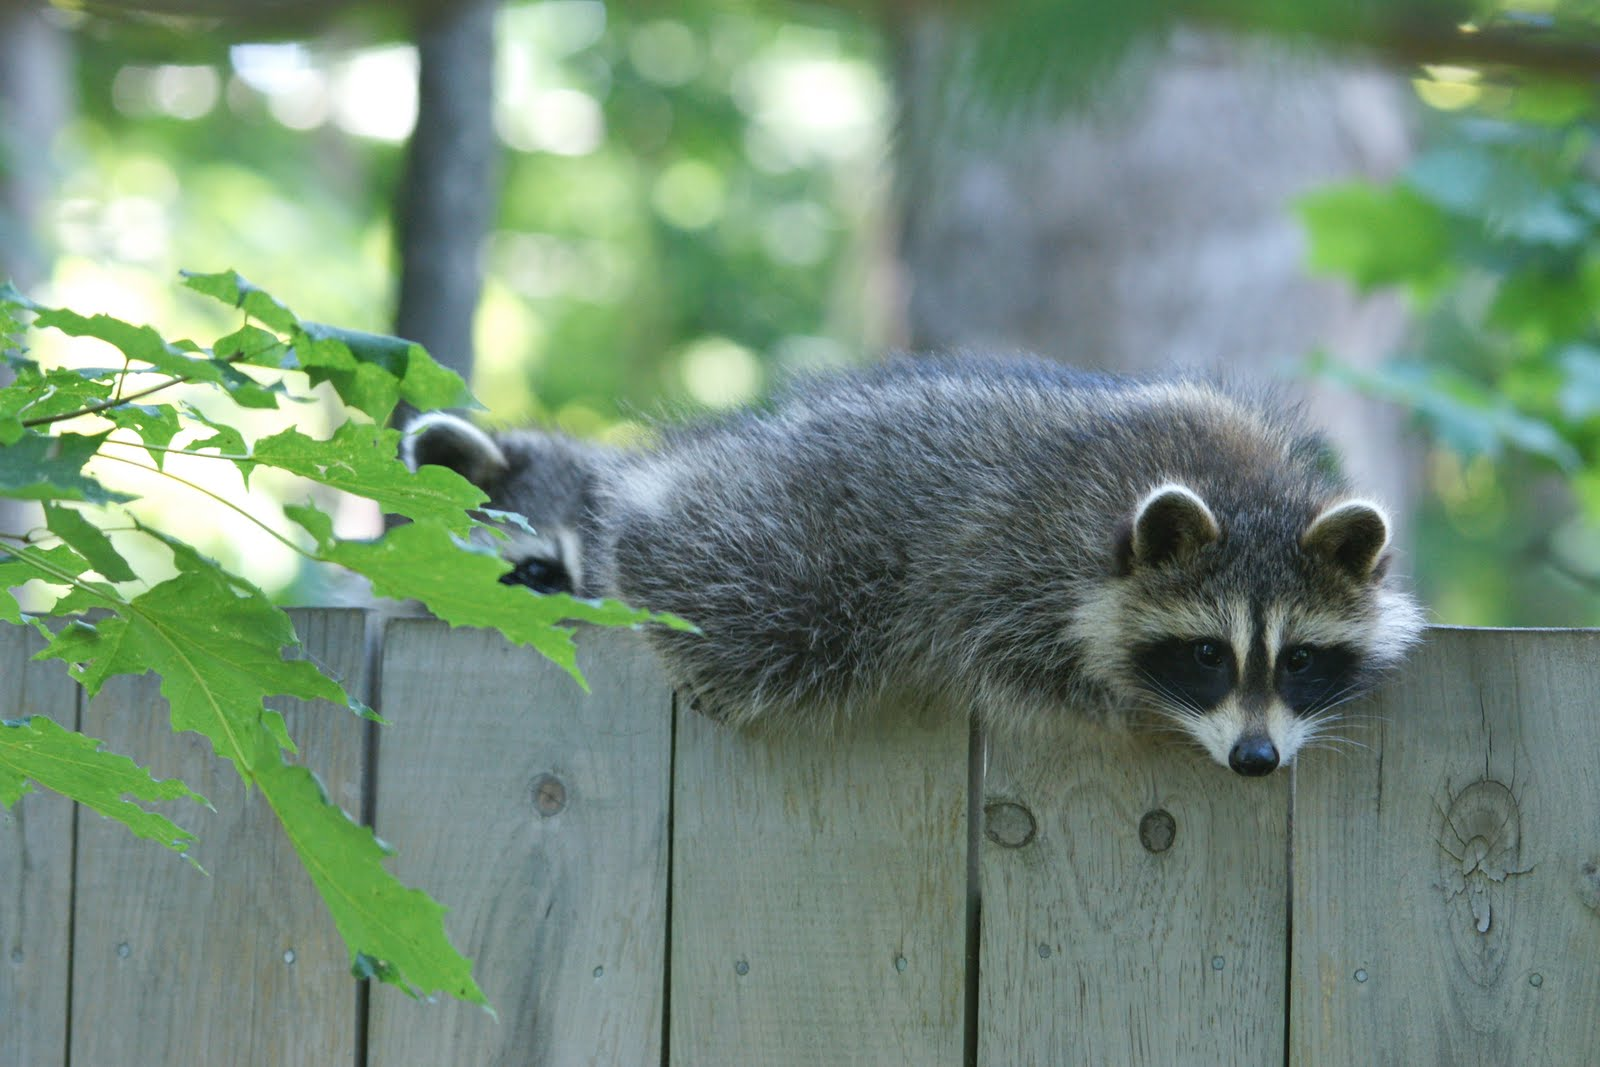 Nature Works Photography: Baby raccoons in the yard.